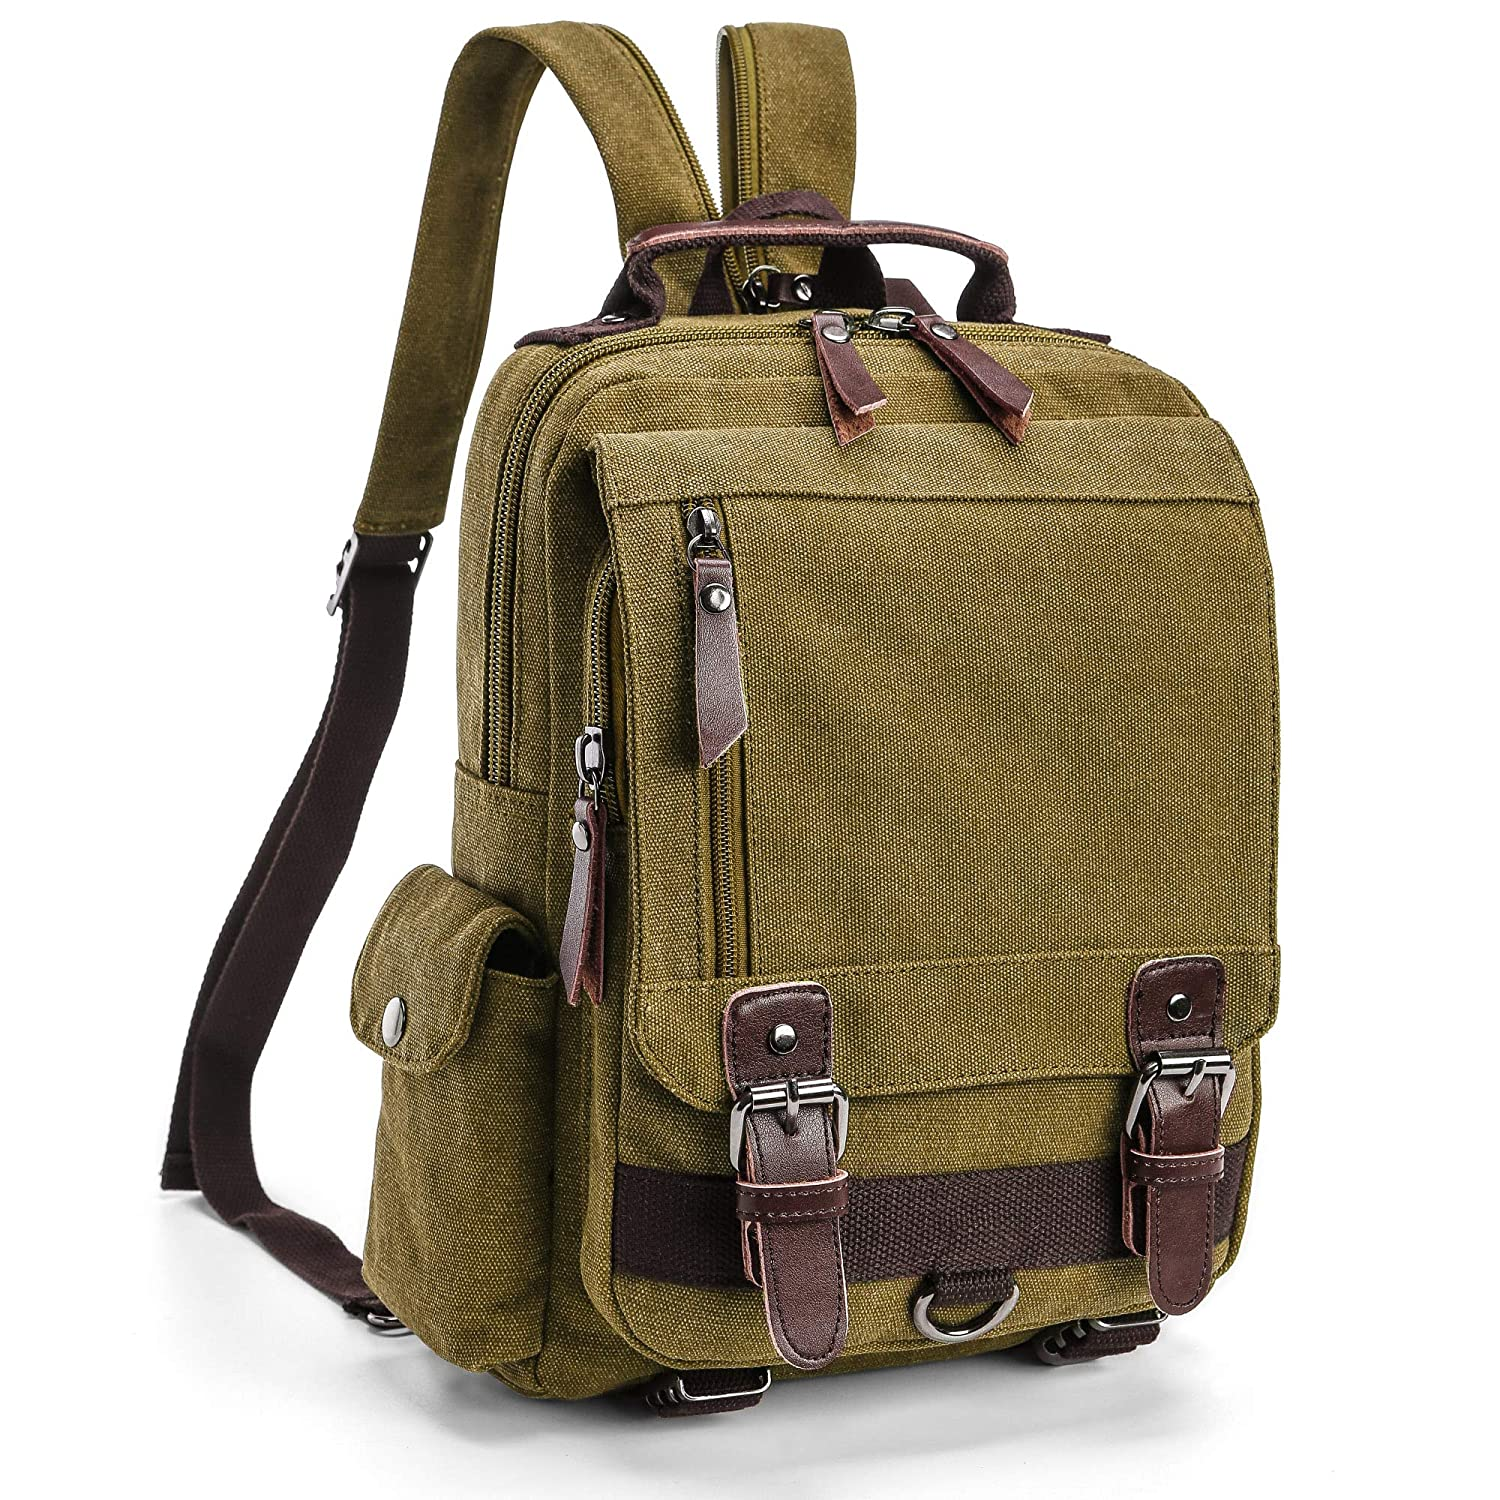 080b5abaa0a0 Vintage Canvas Shoulder Bag for All-Purpose Use CMBB Luggage   Travel Gear Sweetbriar  Classic Messenger ...